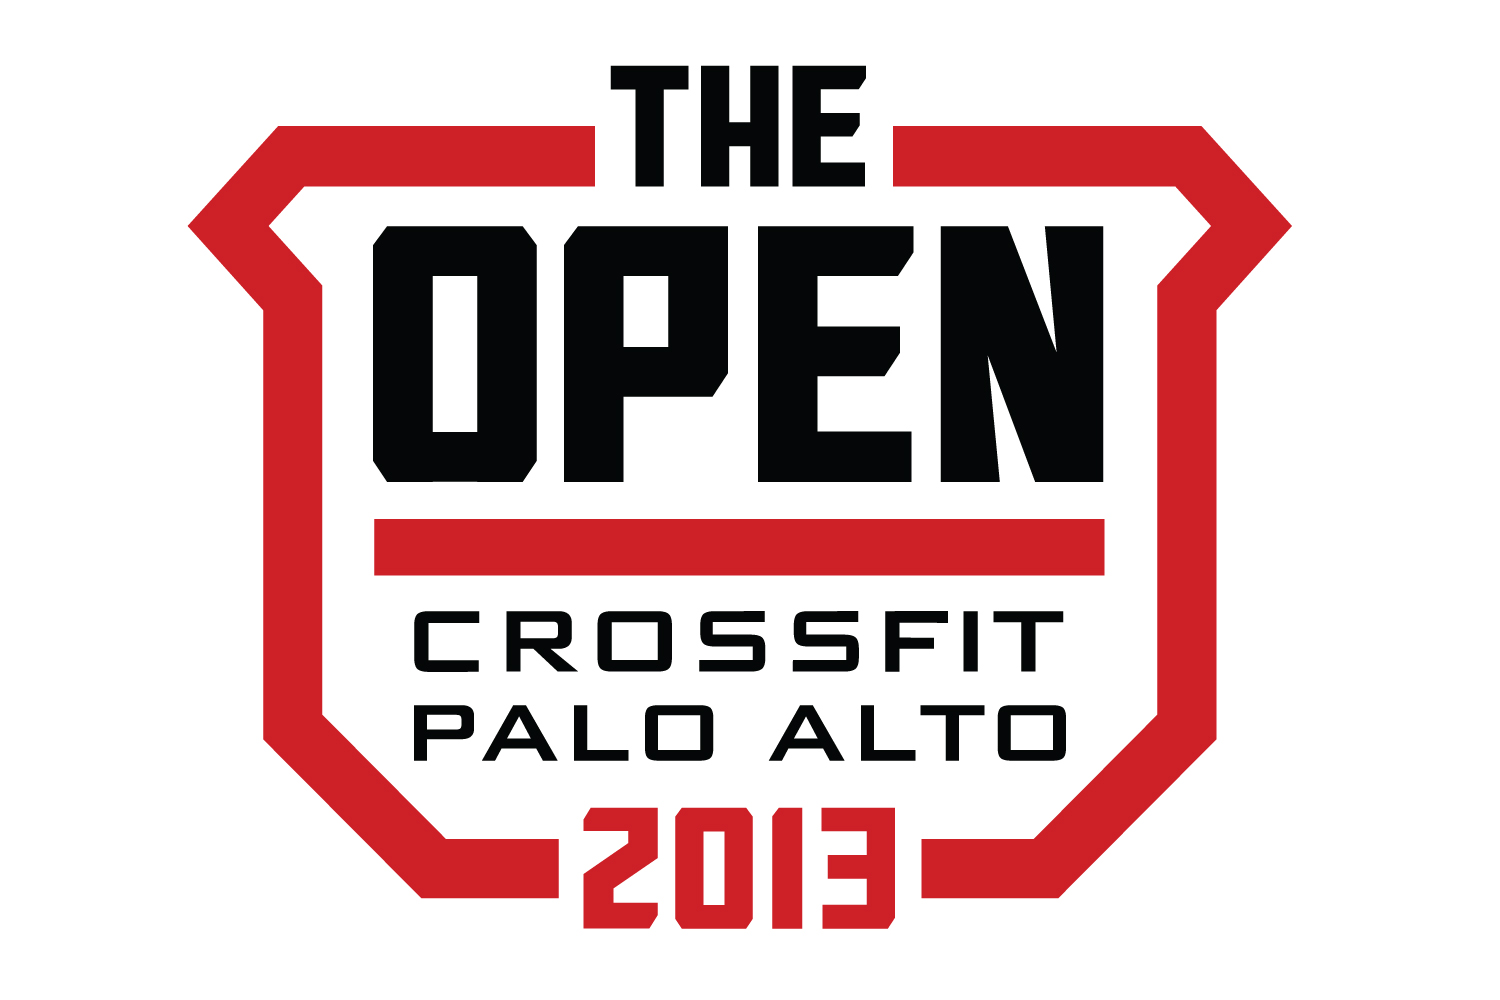 The 2014 CrossFit Open at CrossFit Palo Alto